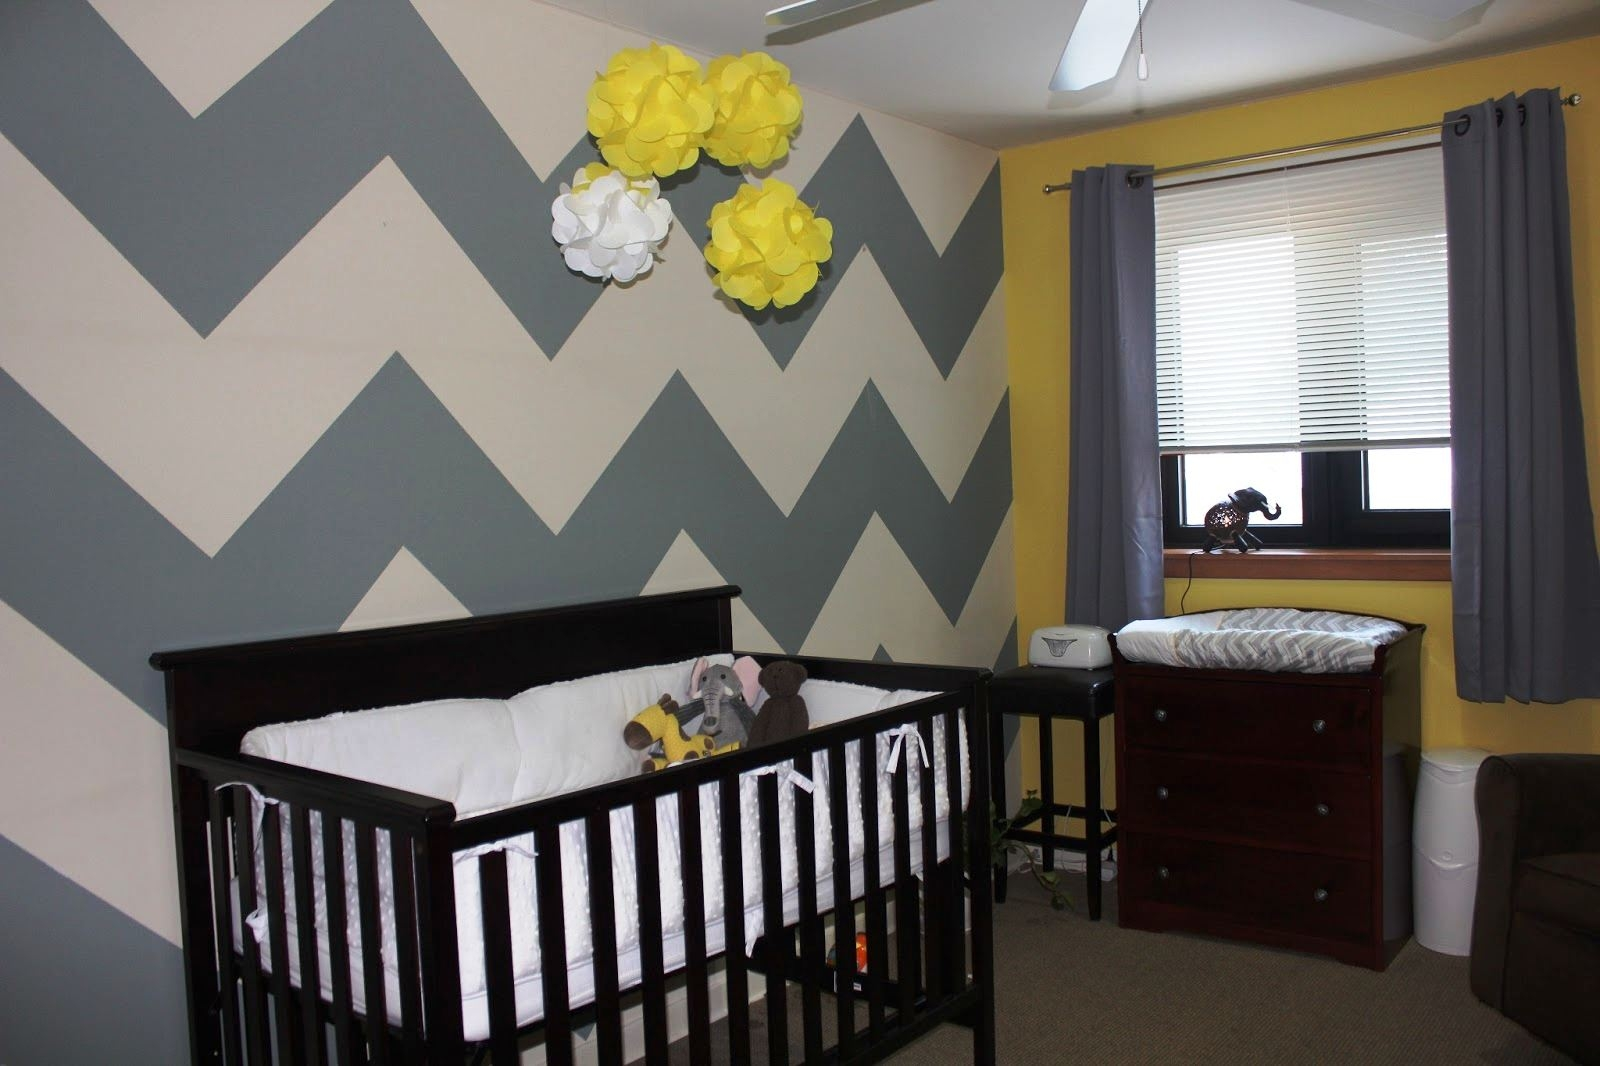 Nursery Enchanting Nursery Decorating Ideas With Blackout Pertaining To Blackout Curtains For Baby Room (Image 21 of 25)